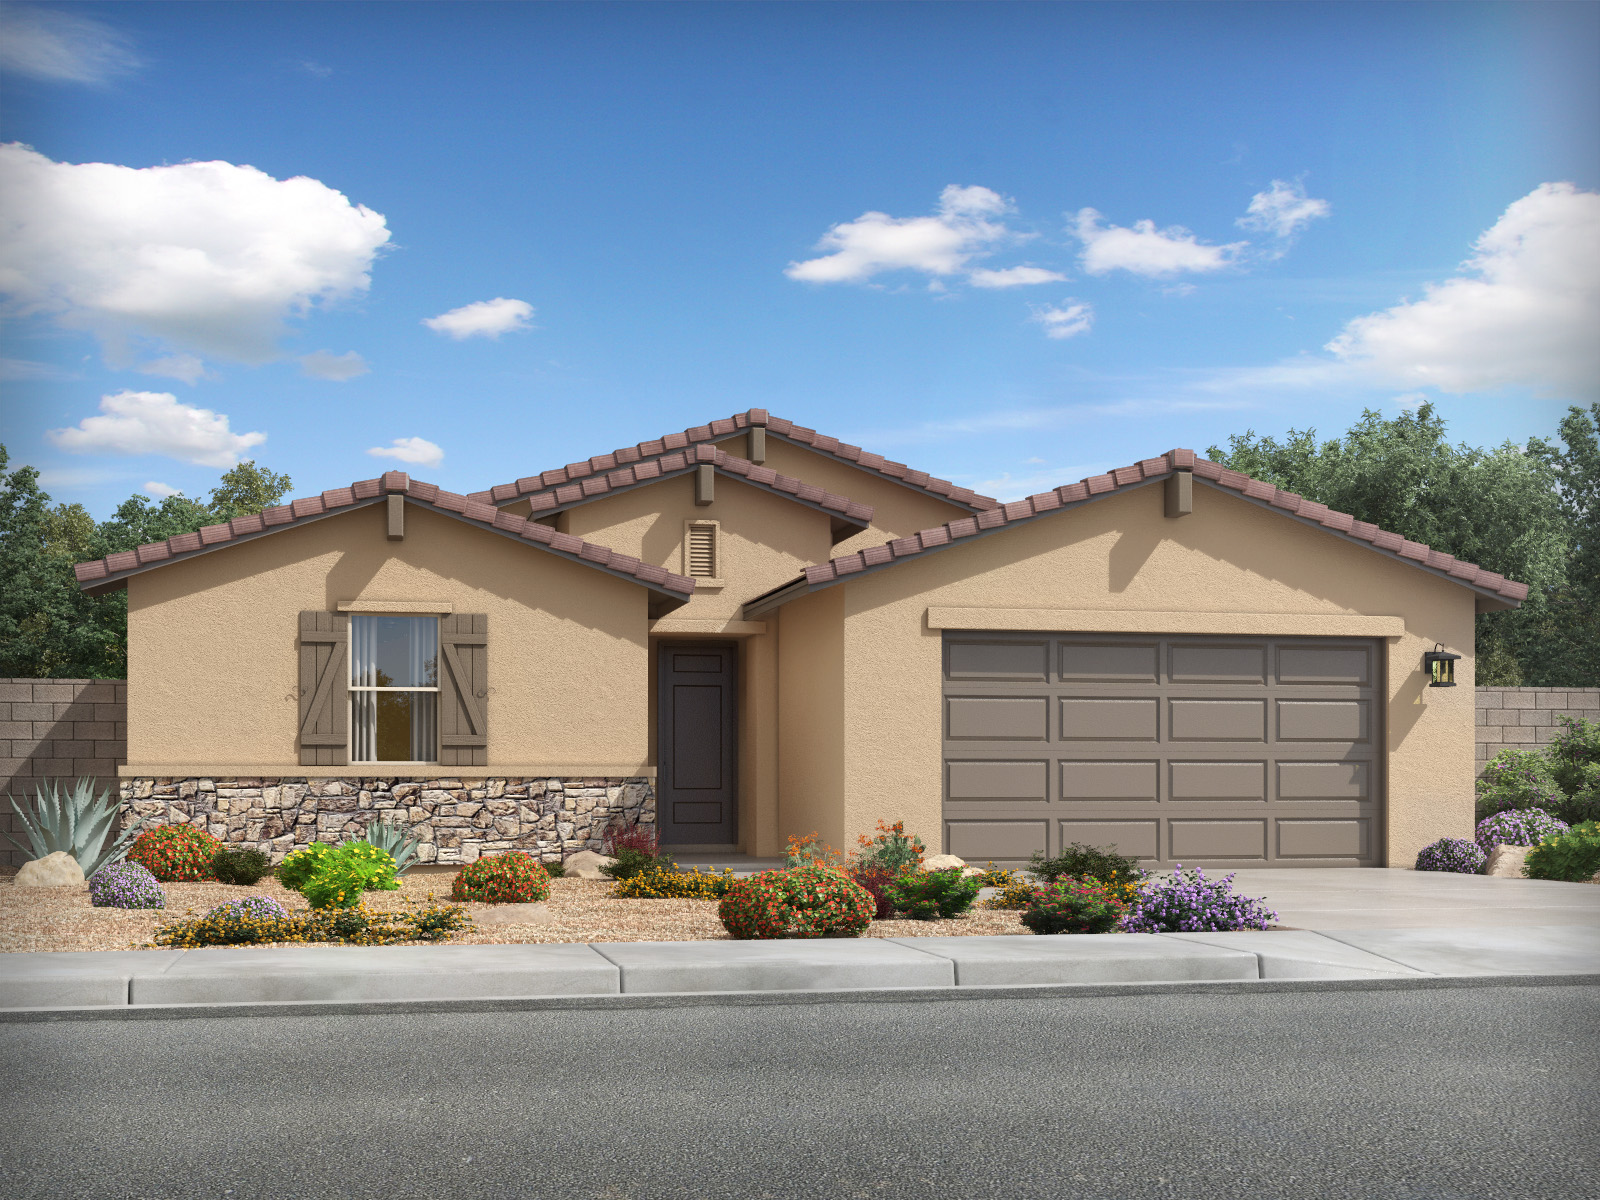 Bailey Plus Model 5br 3ba Homes For Sale In San Tan Valley Az Meritage Homes